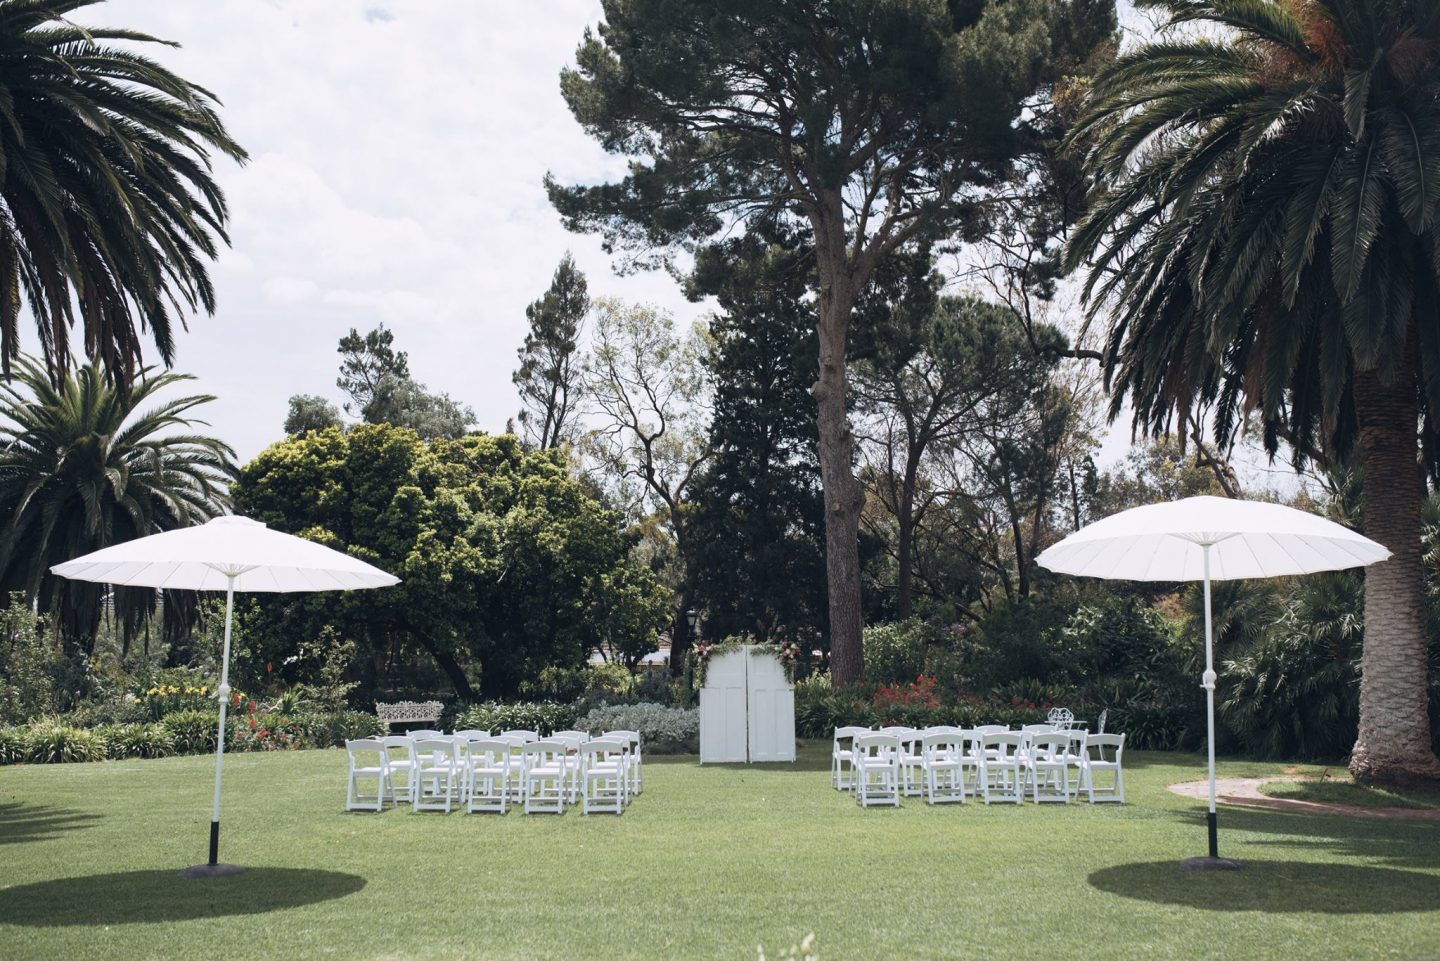 wedding-ceremony-outdoors-on-lawned-area-with-white-round-market-umbrellas-and-Americana-chairs